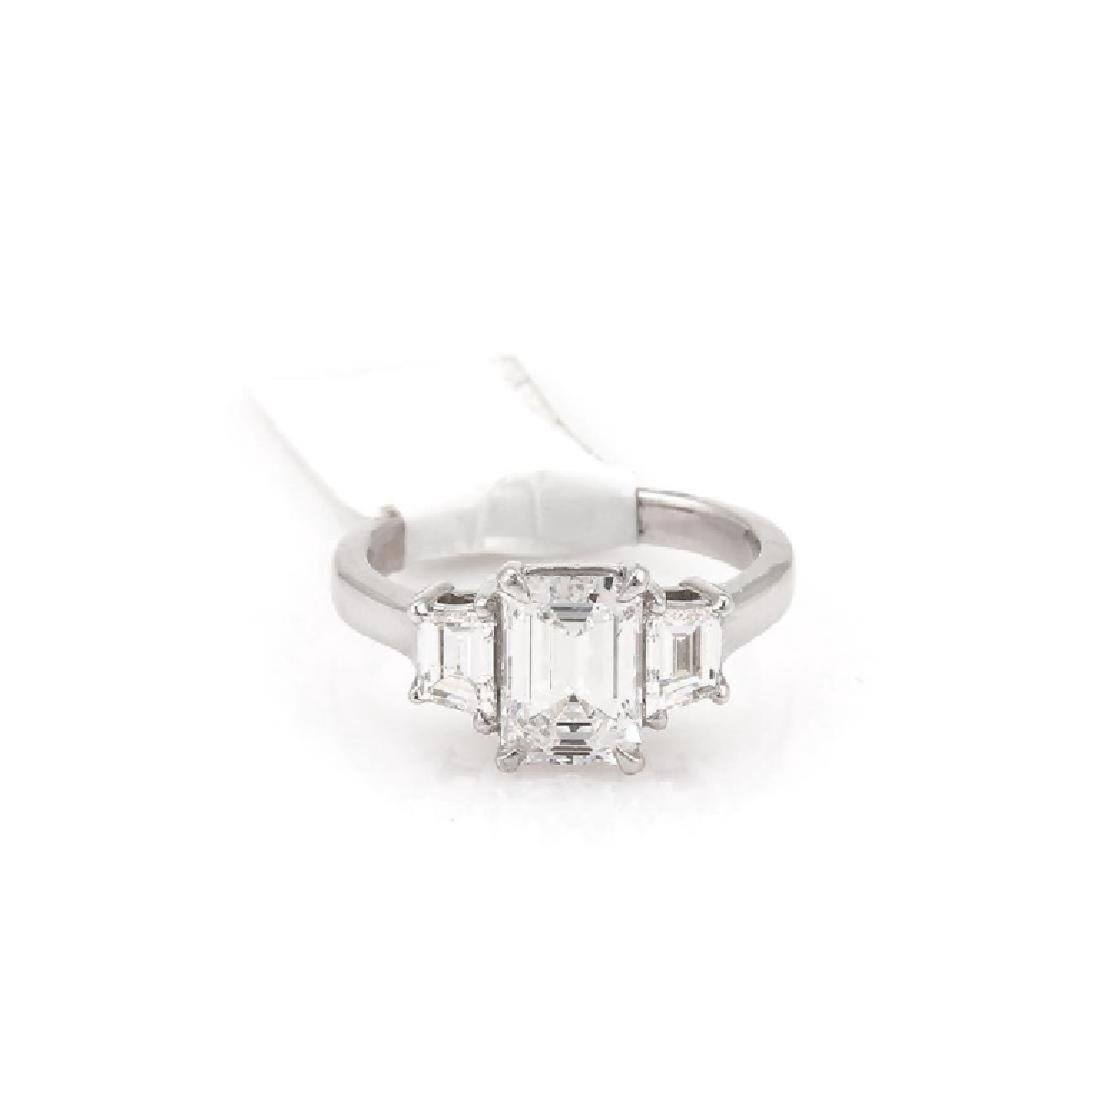 GIA CERTIFIED 2.74 TCW EMERALD CUT ENGAGEMENT RING